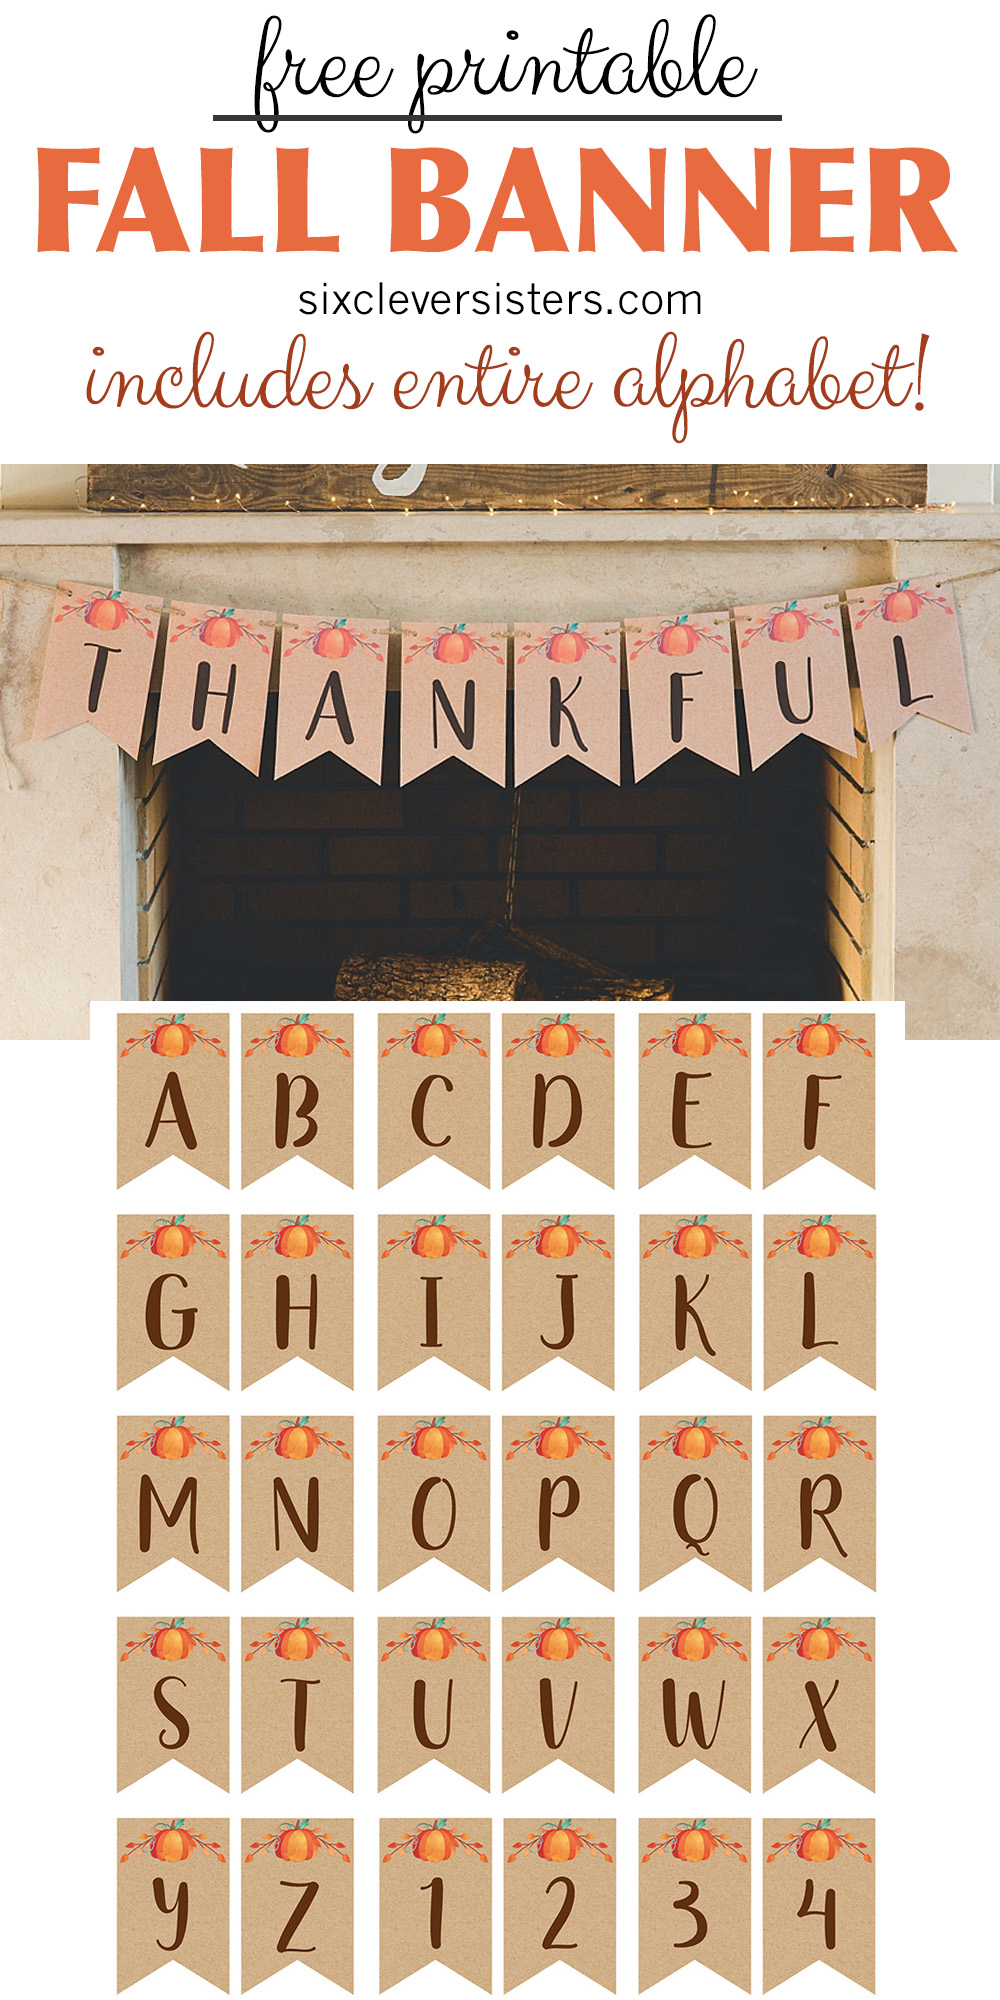 picture regarding Fall Banner Printable titled Banner_fixed_3_extensive_pin - 6 Smart Sisters